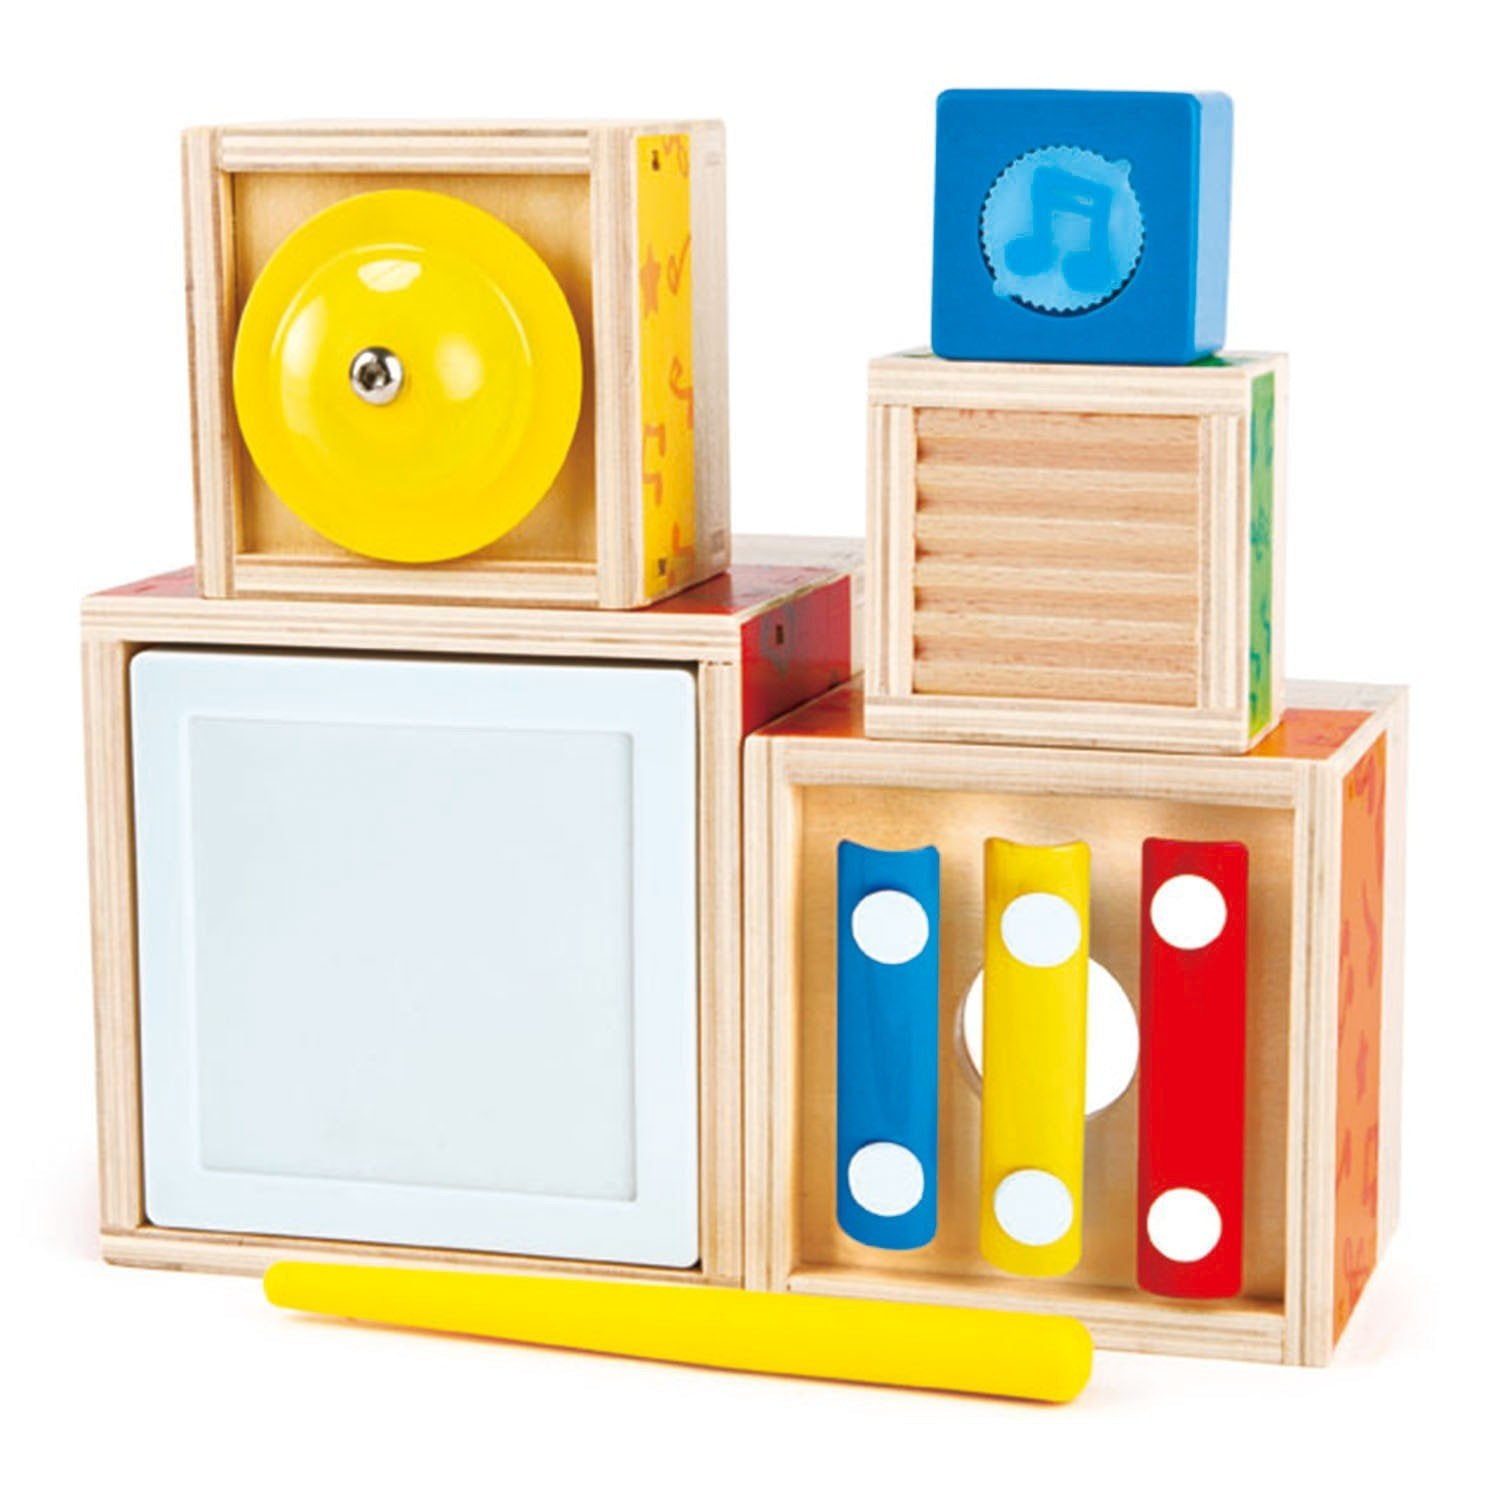 Hape Multi Music Stacking Set Hape Musical Toys at Little Earth Nest Eco Shop